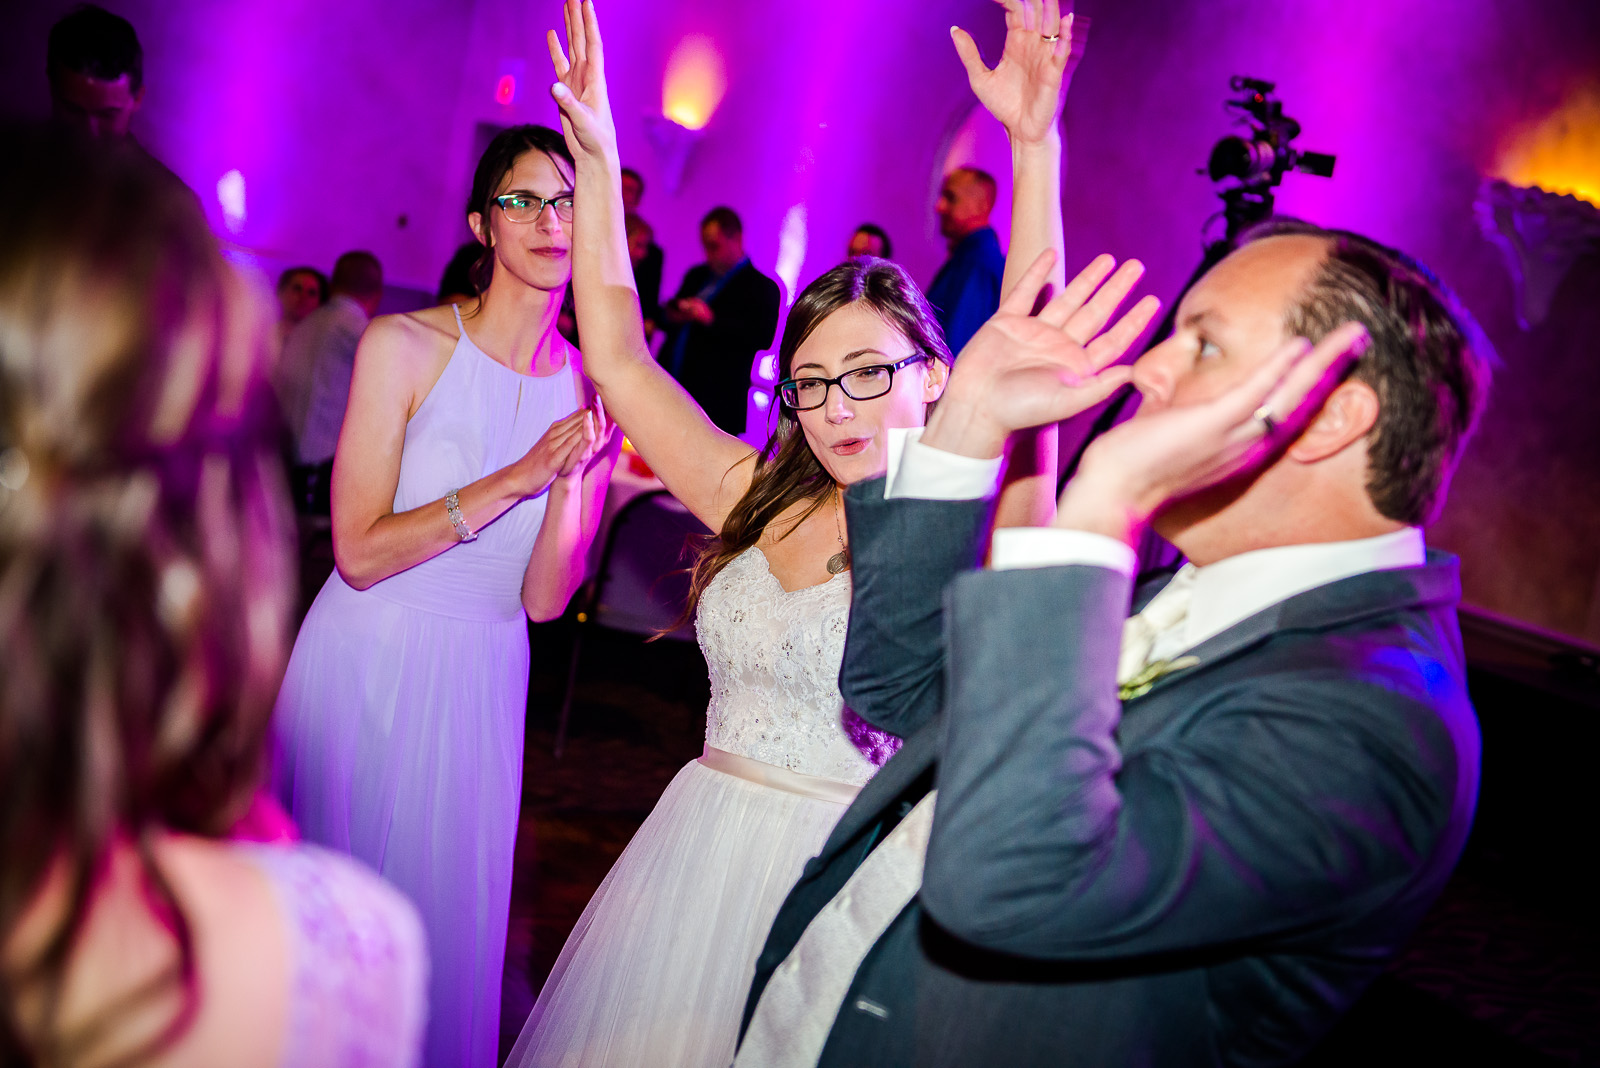 Eric_and_Christy_Photography_Blog_Julie_Adam_Wedding-55